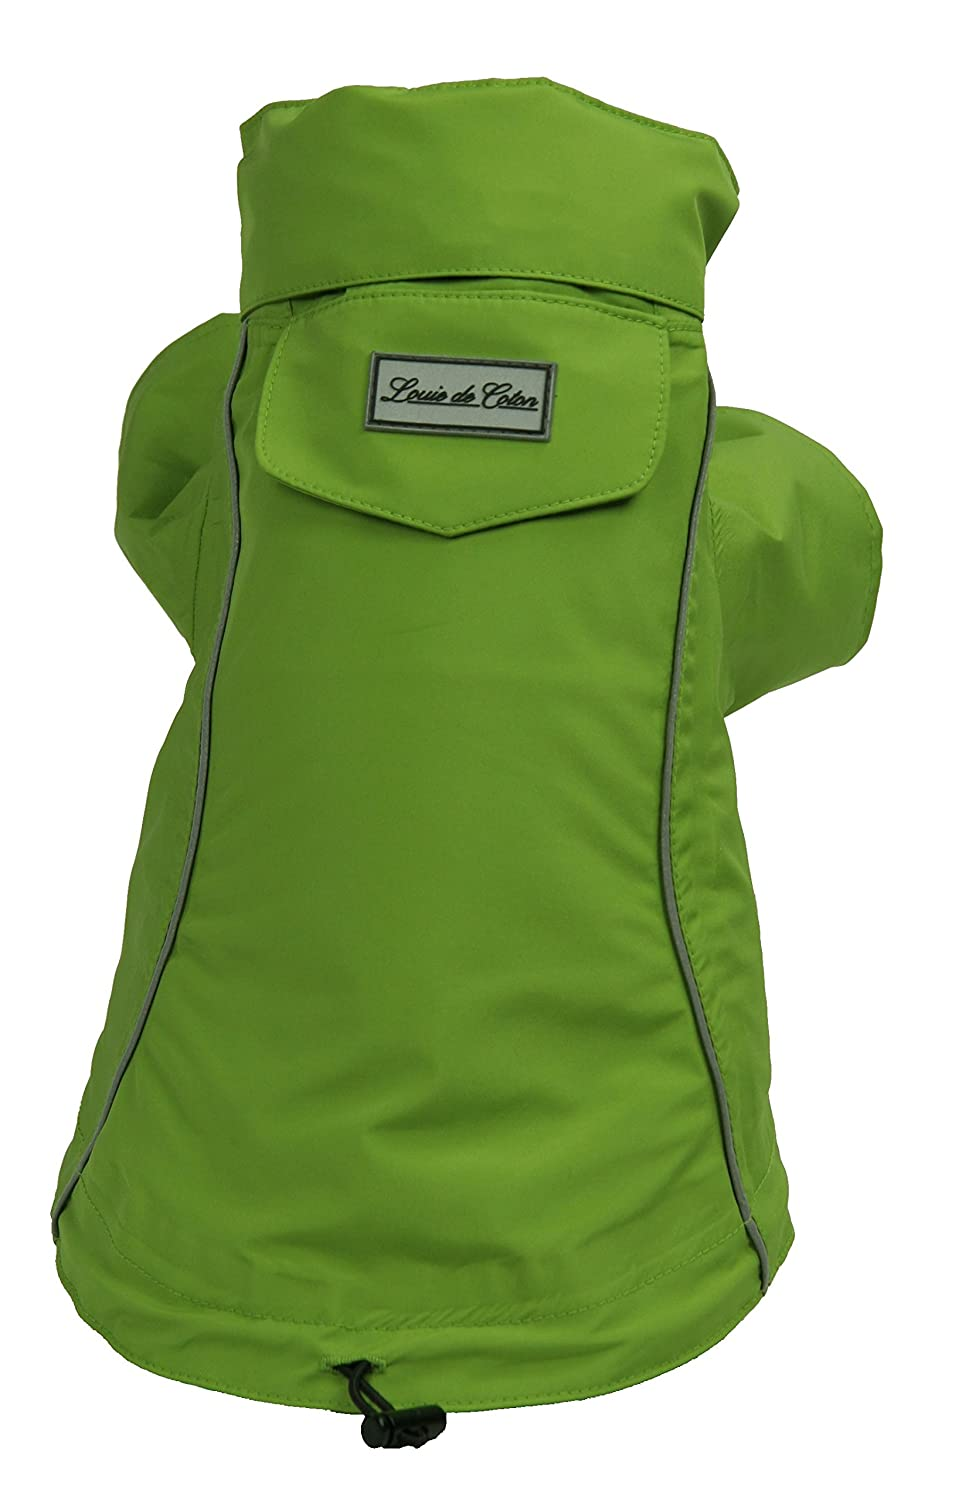 Small Louie de Coton Made in USA Limited Edition Waterproof Breathable Reflective Packable Pet Rain Coat with Stow Away Hood, Green (Small)